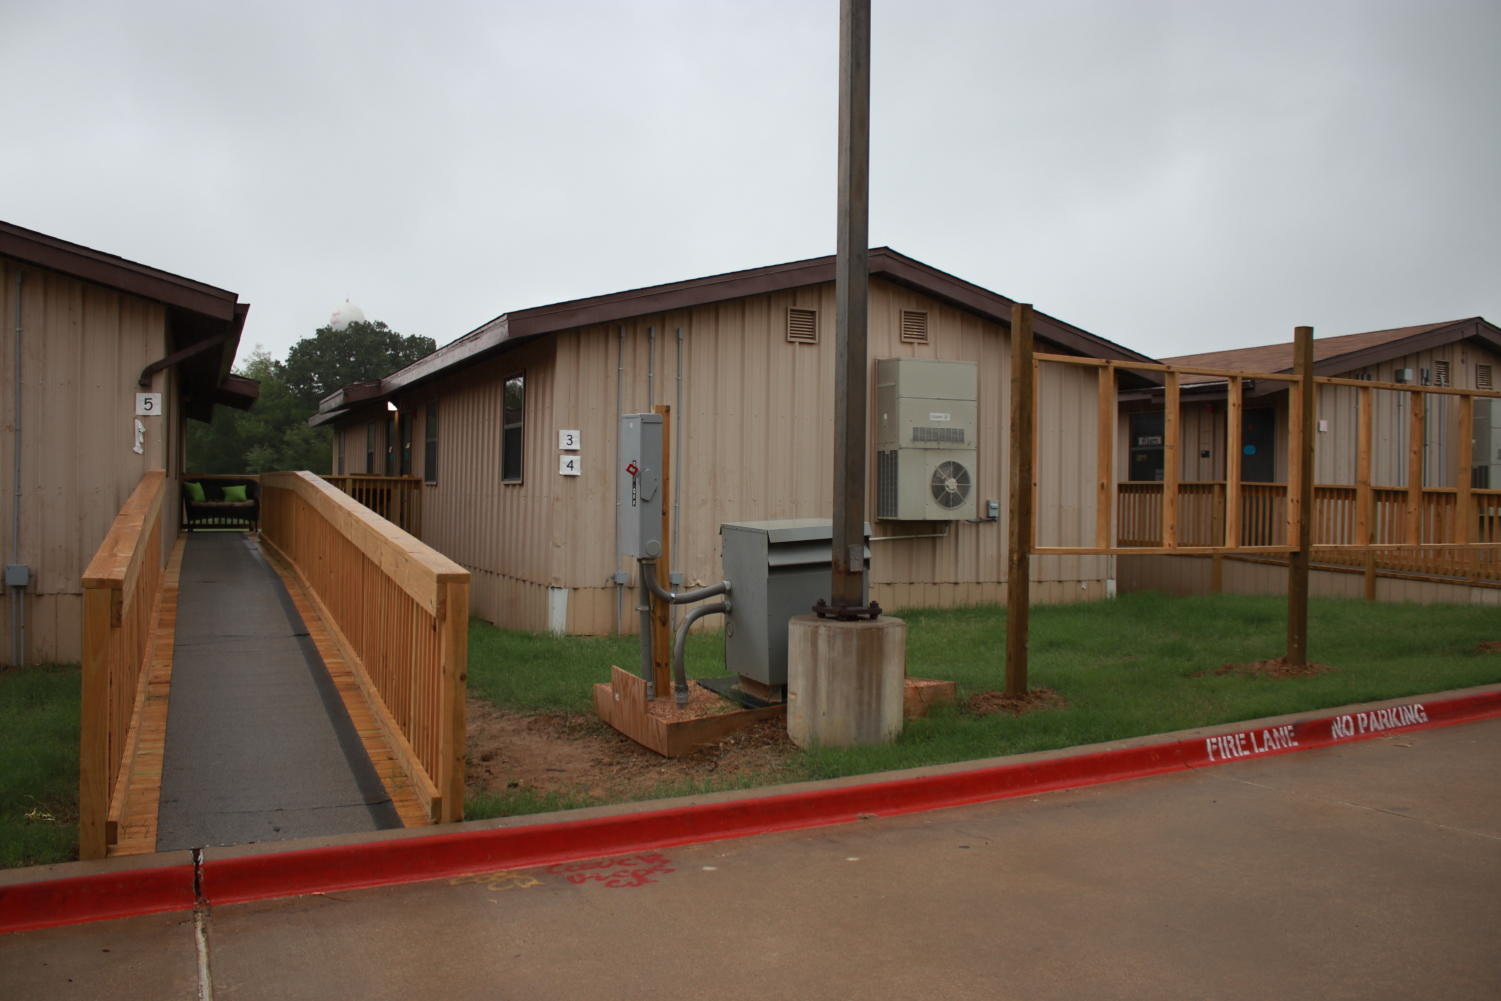 Portables on the elementary school campus serve as a temporary solution for overcrowding.